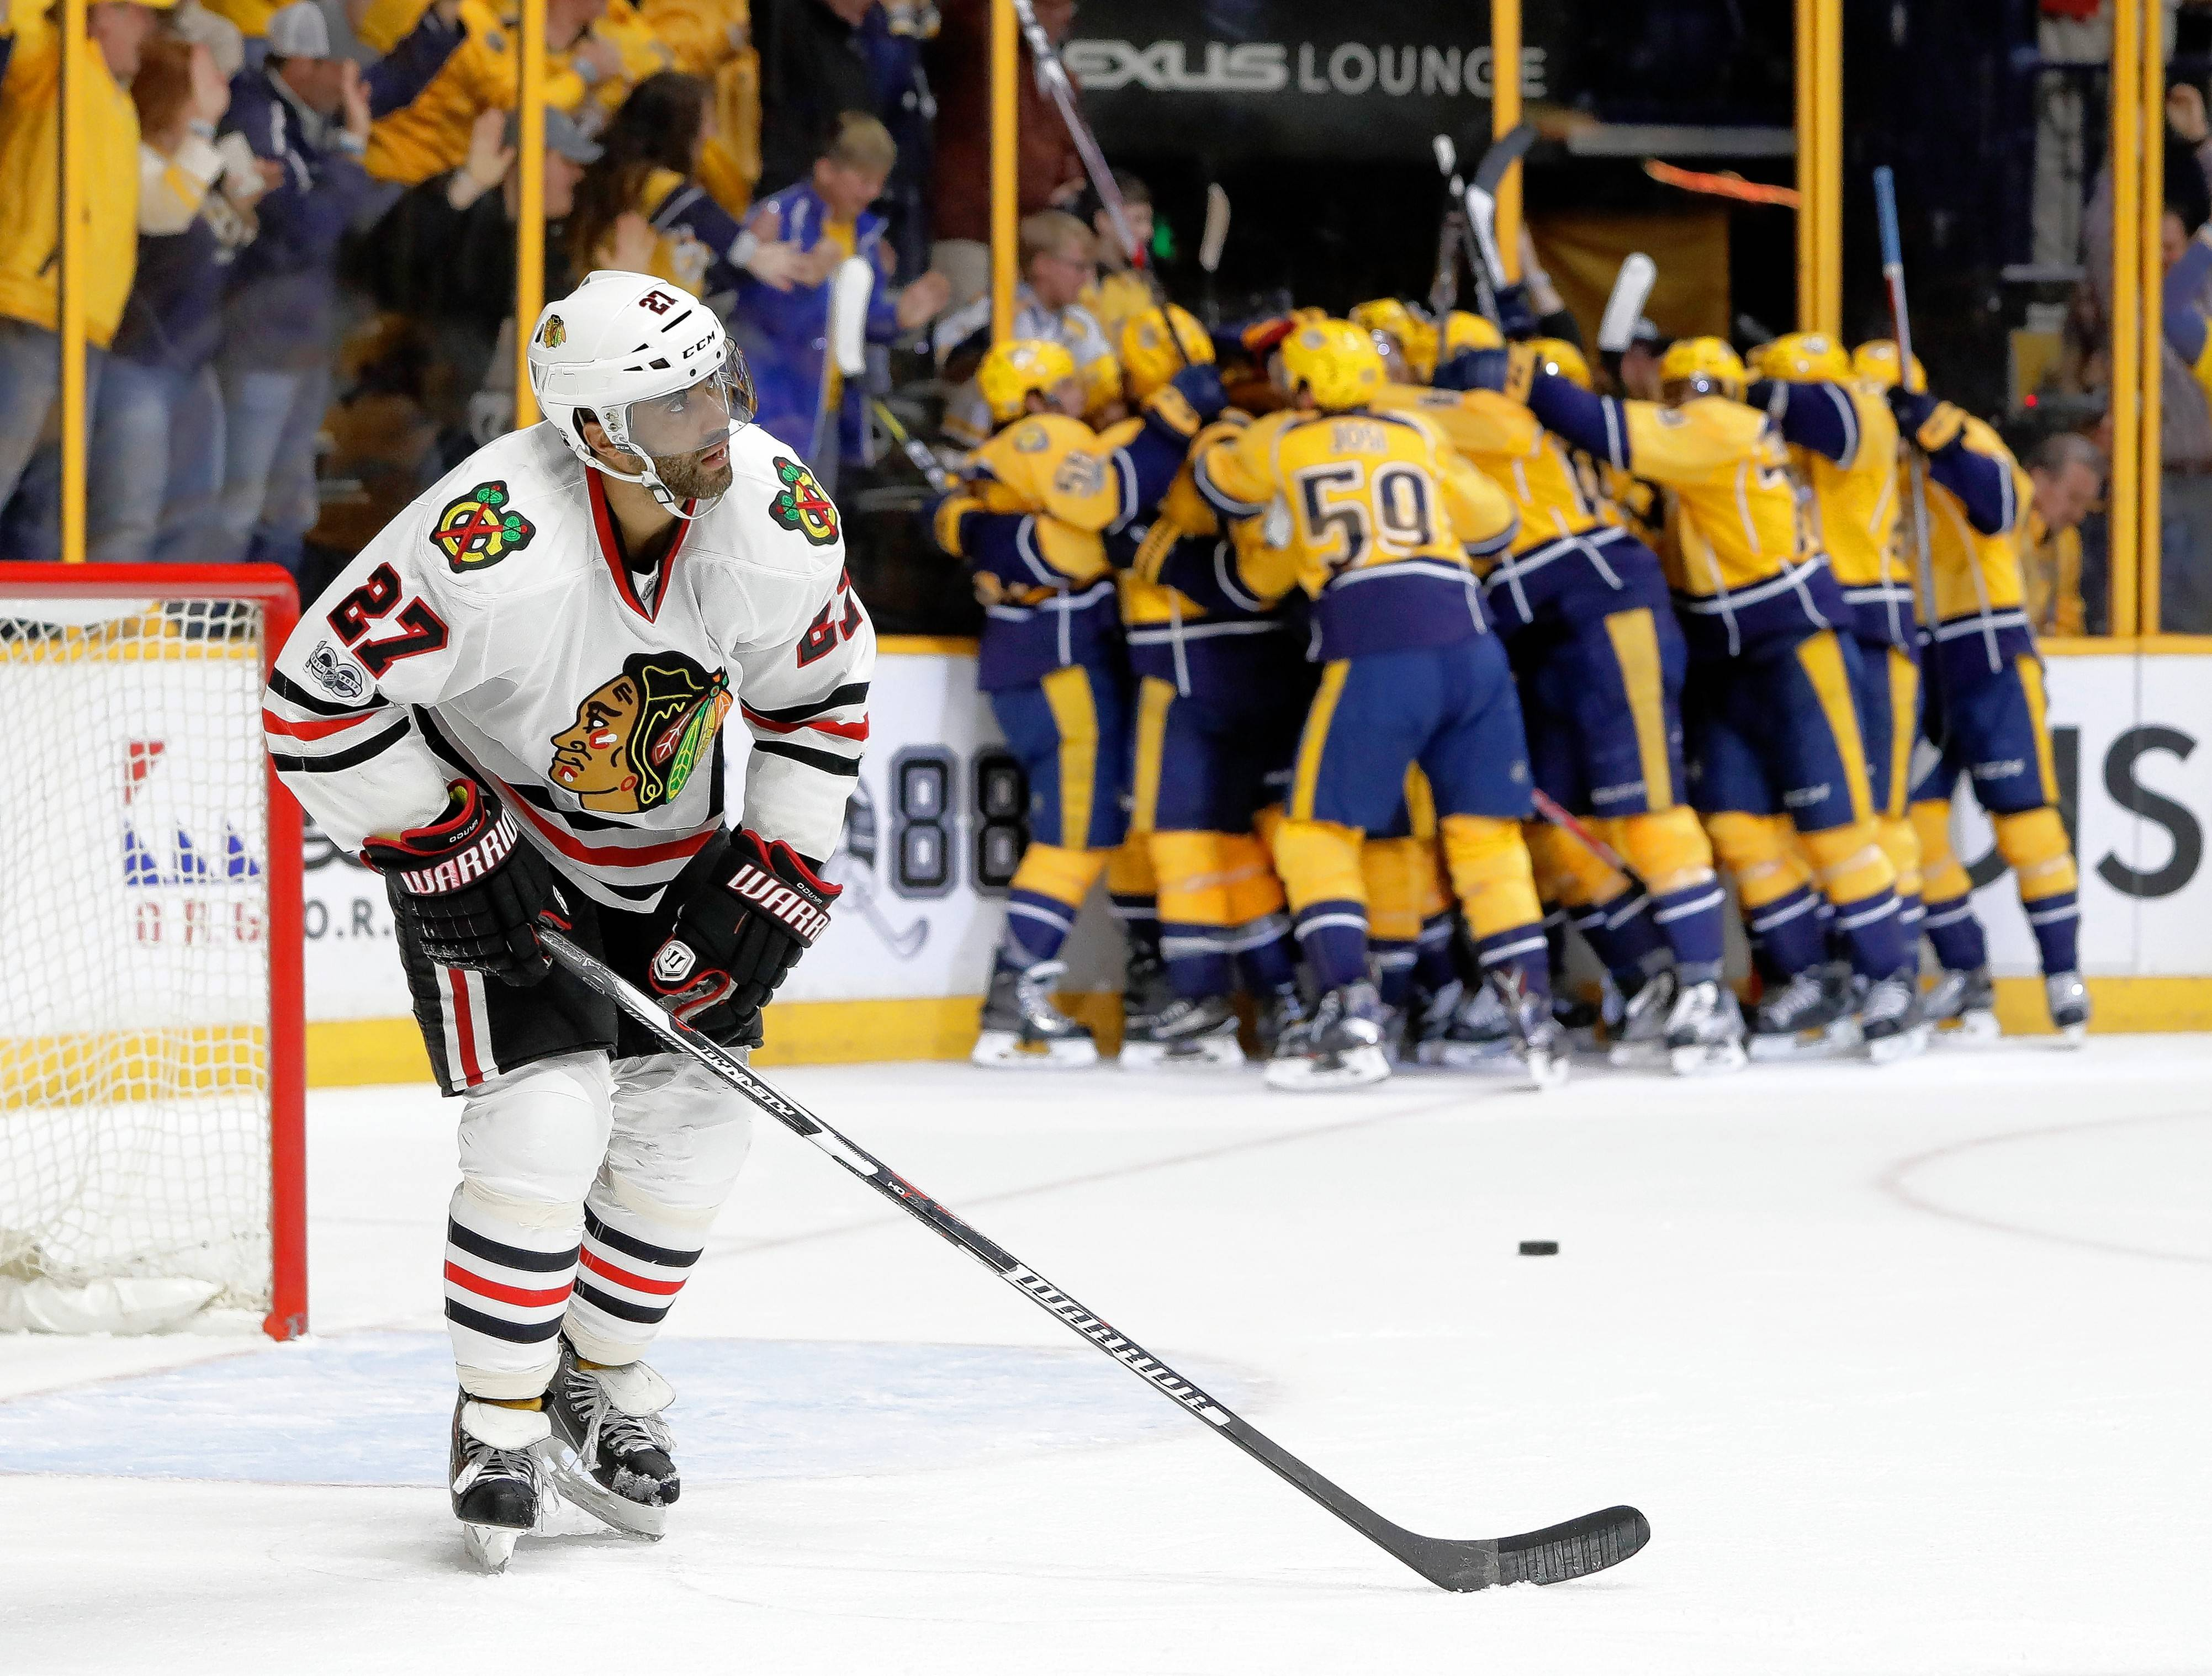 Like many of his teammates, Chicago Blackhawks defenseman Johnny Oduya has not played well in the first round of the Western Conference playoffs against Nashville.